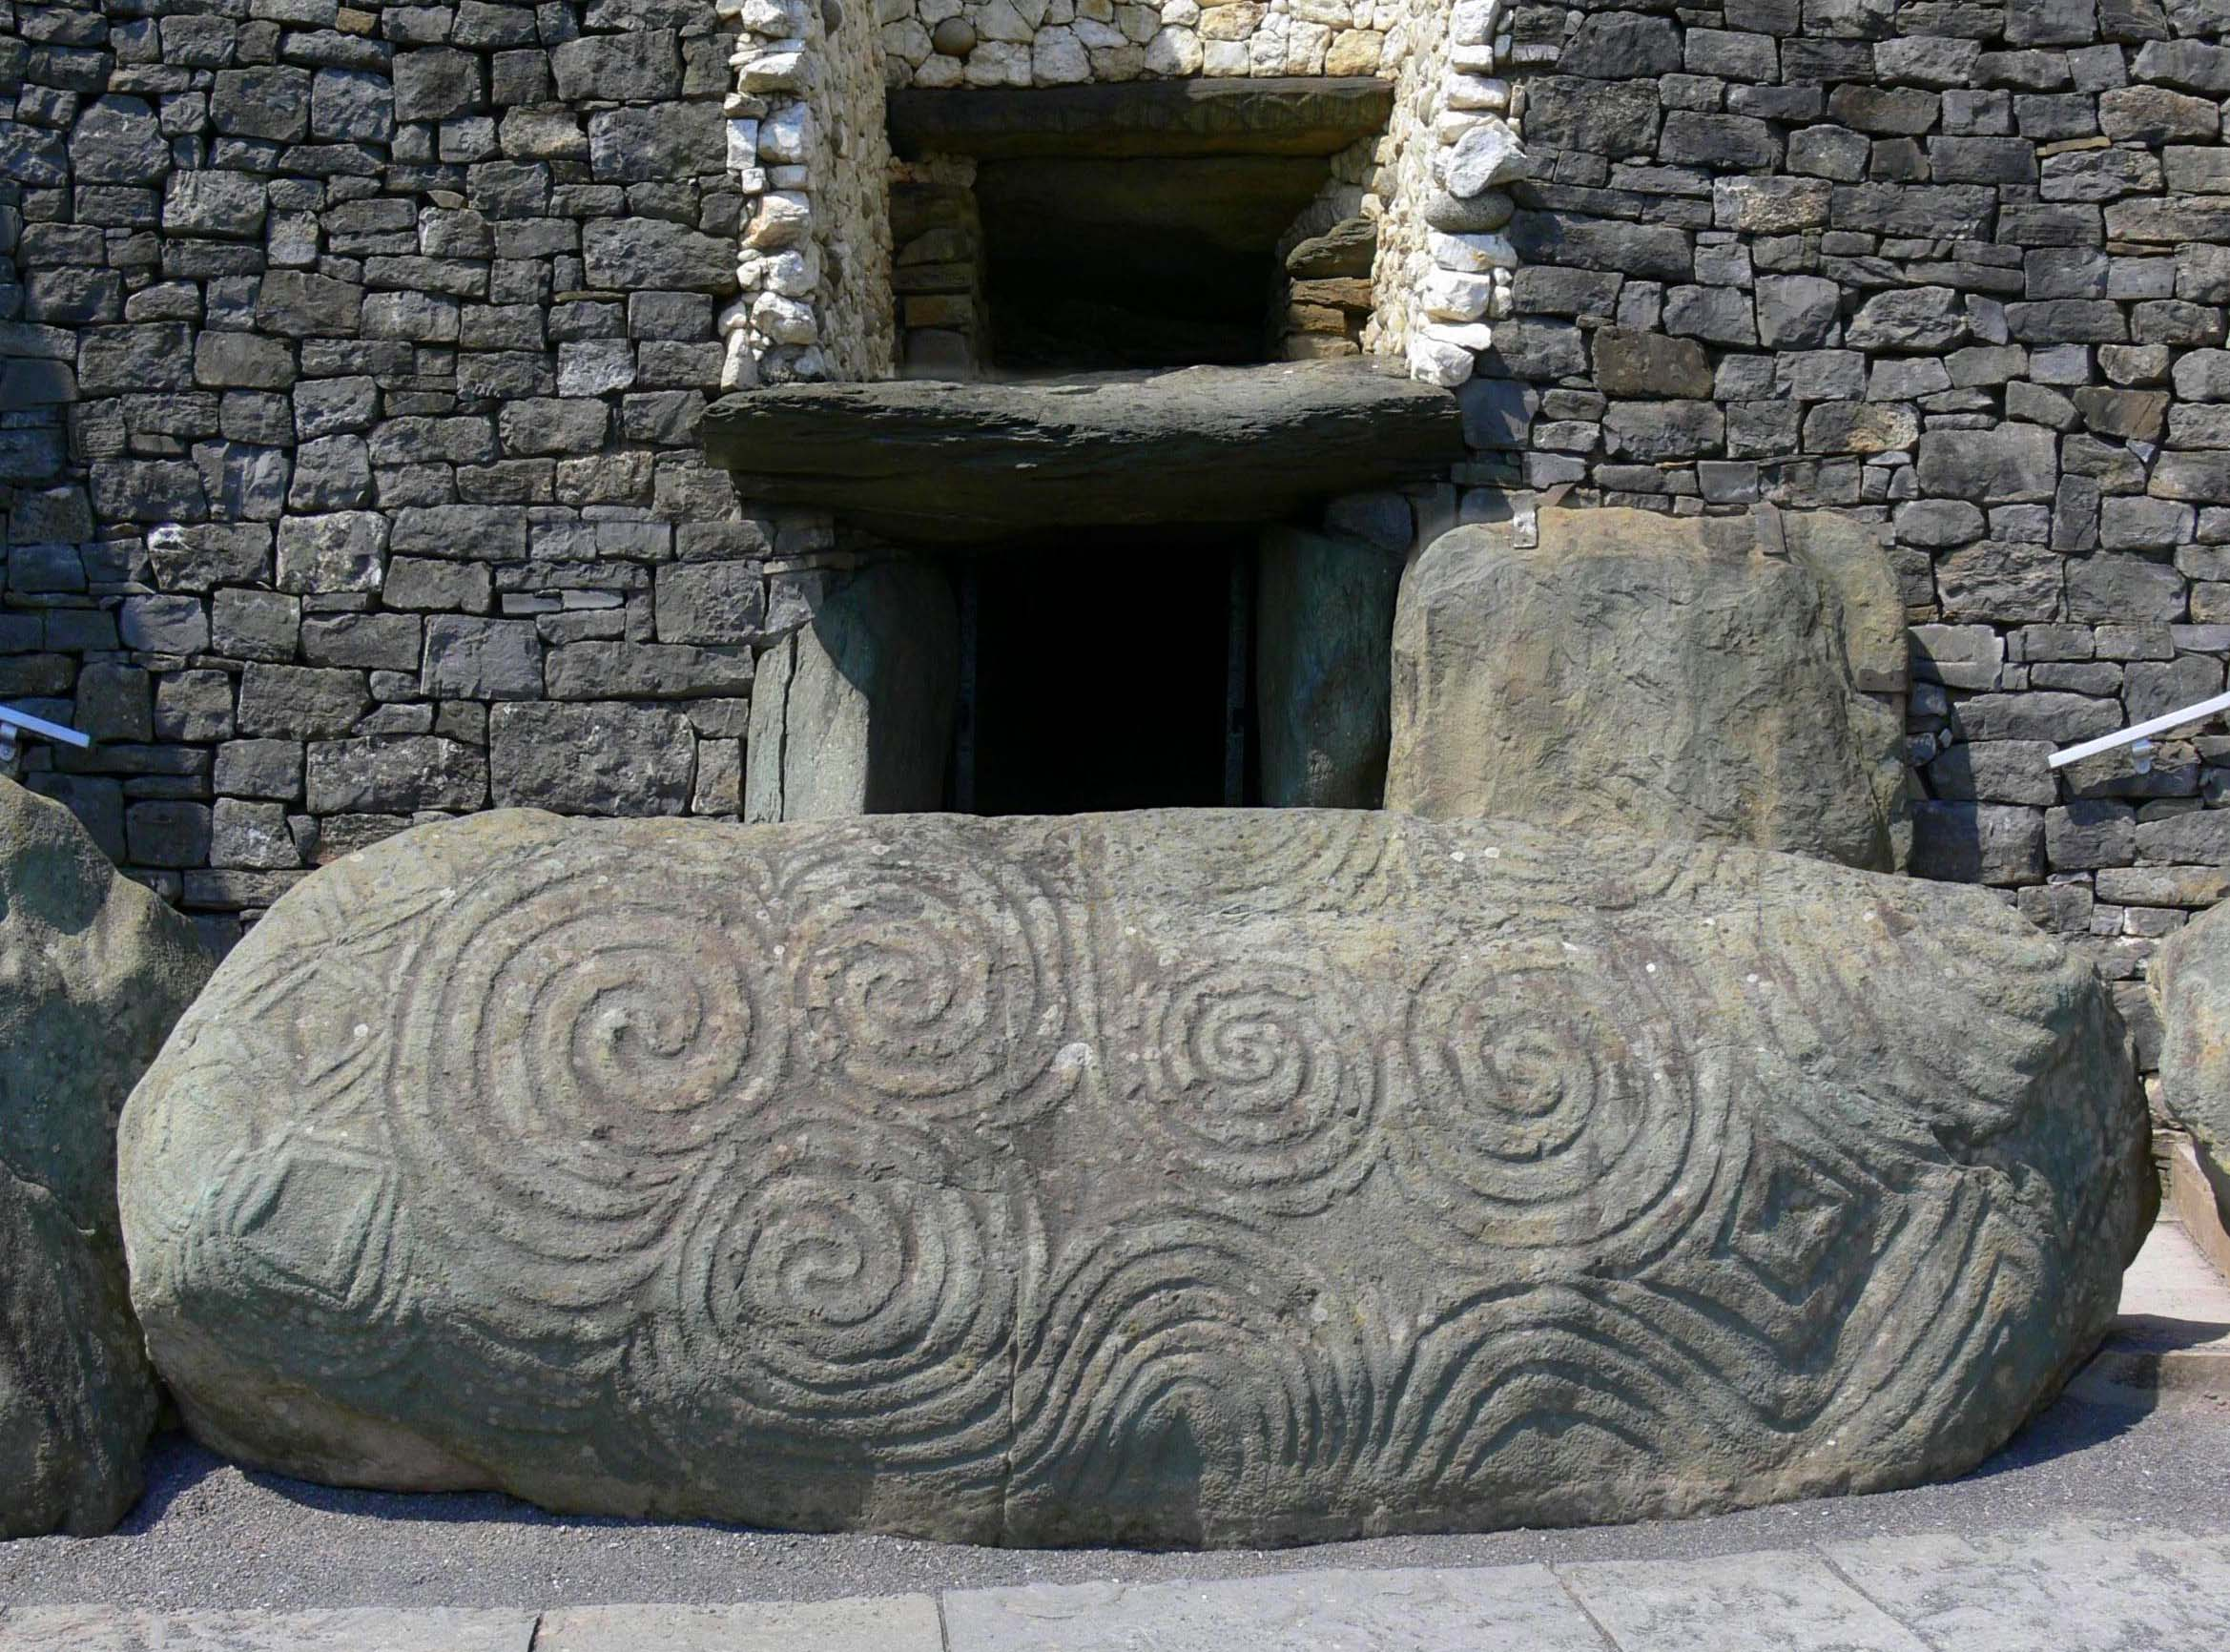 Mysterious Burial Sites facts